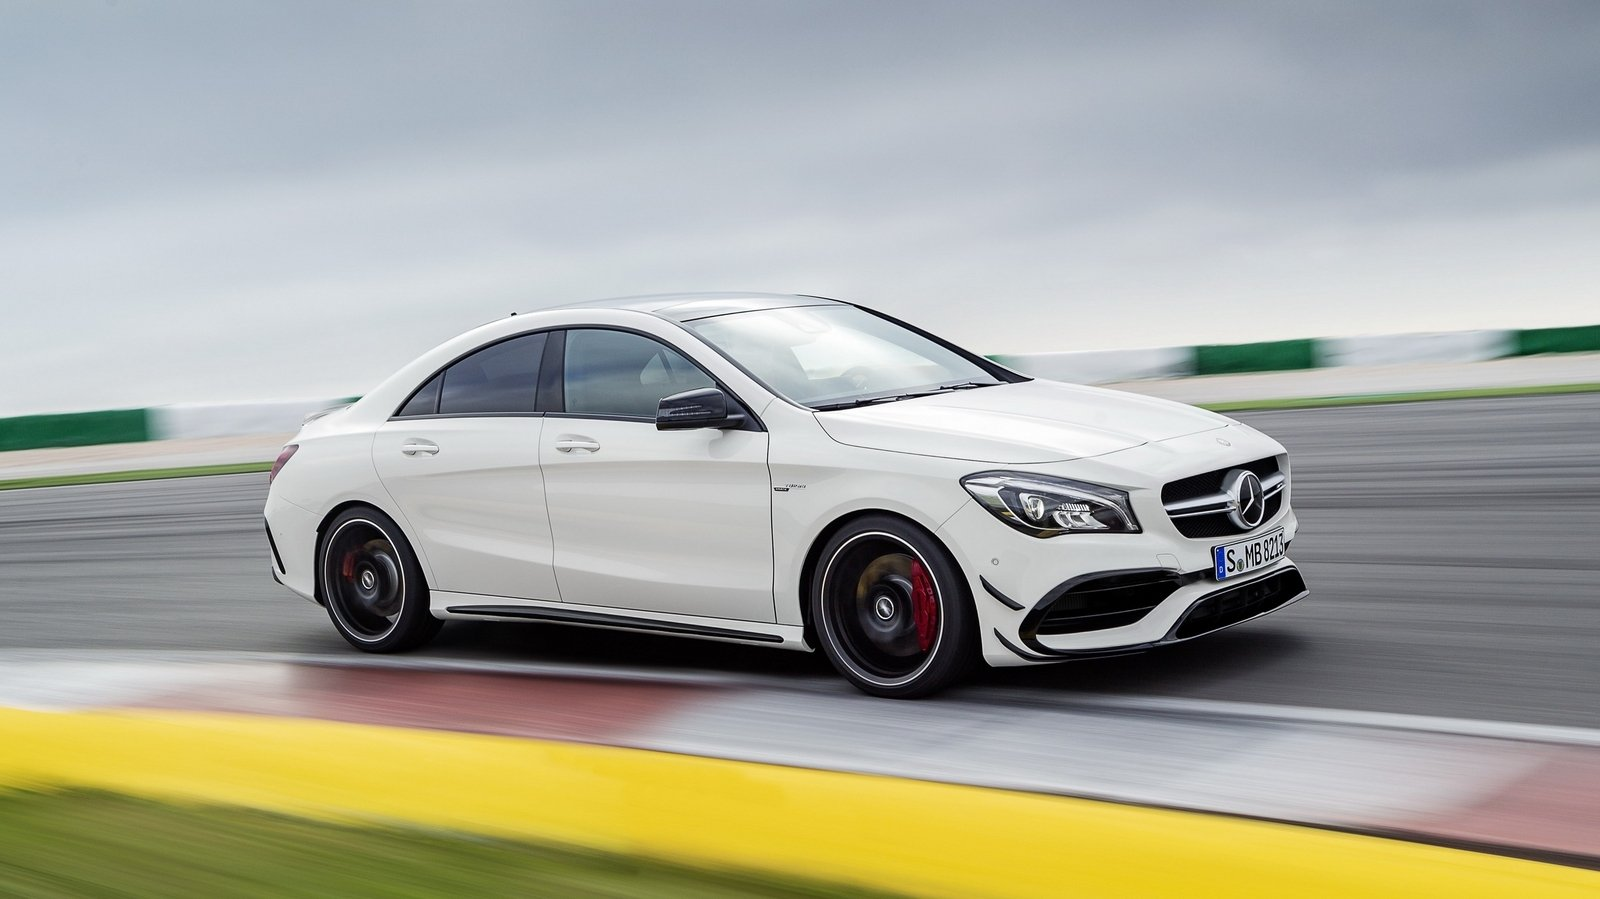 2017 mercedes amg cla45 review gallery top speed. Black Bedroom Furniture Sets. Home Design Ideas